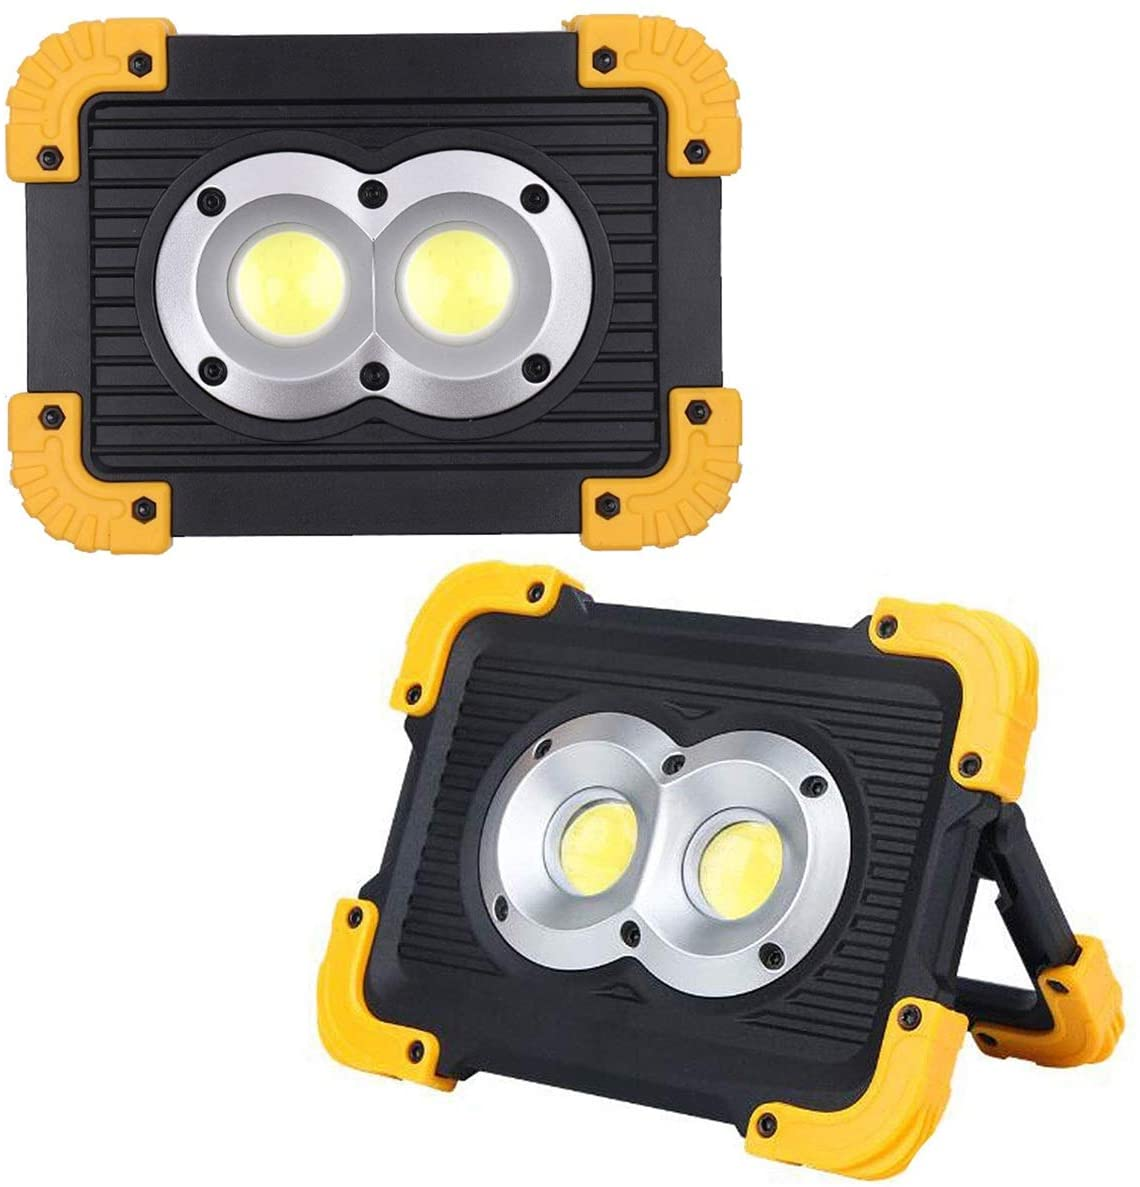 20W COB LED Work Light Portable Waterproof Work Light with USB Port to Charge Mobile Devices for Outdoor Camping Emergency Repairing